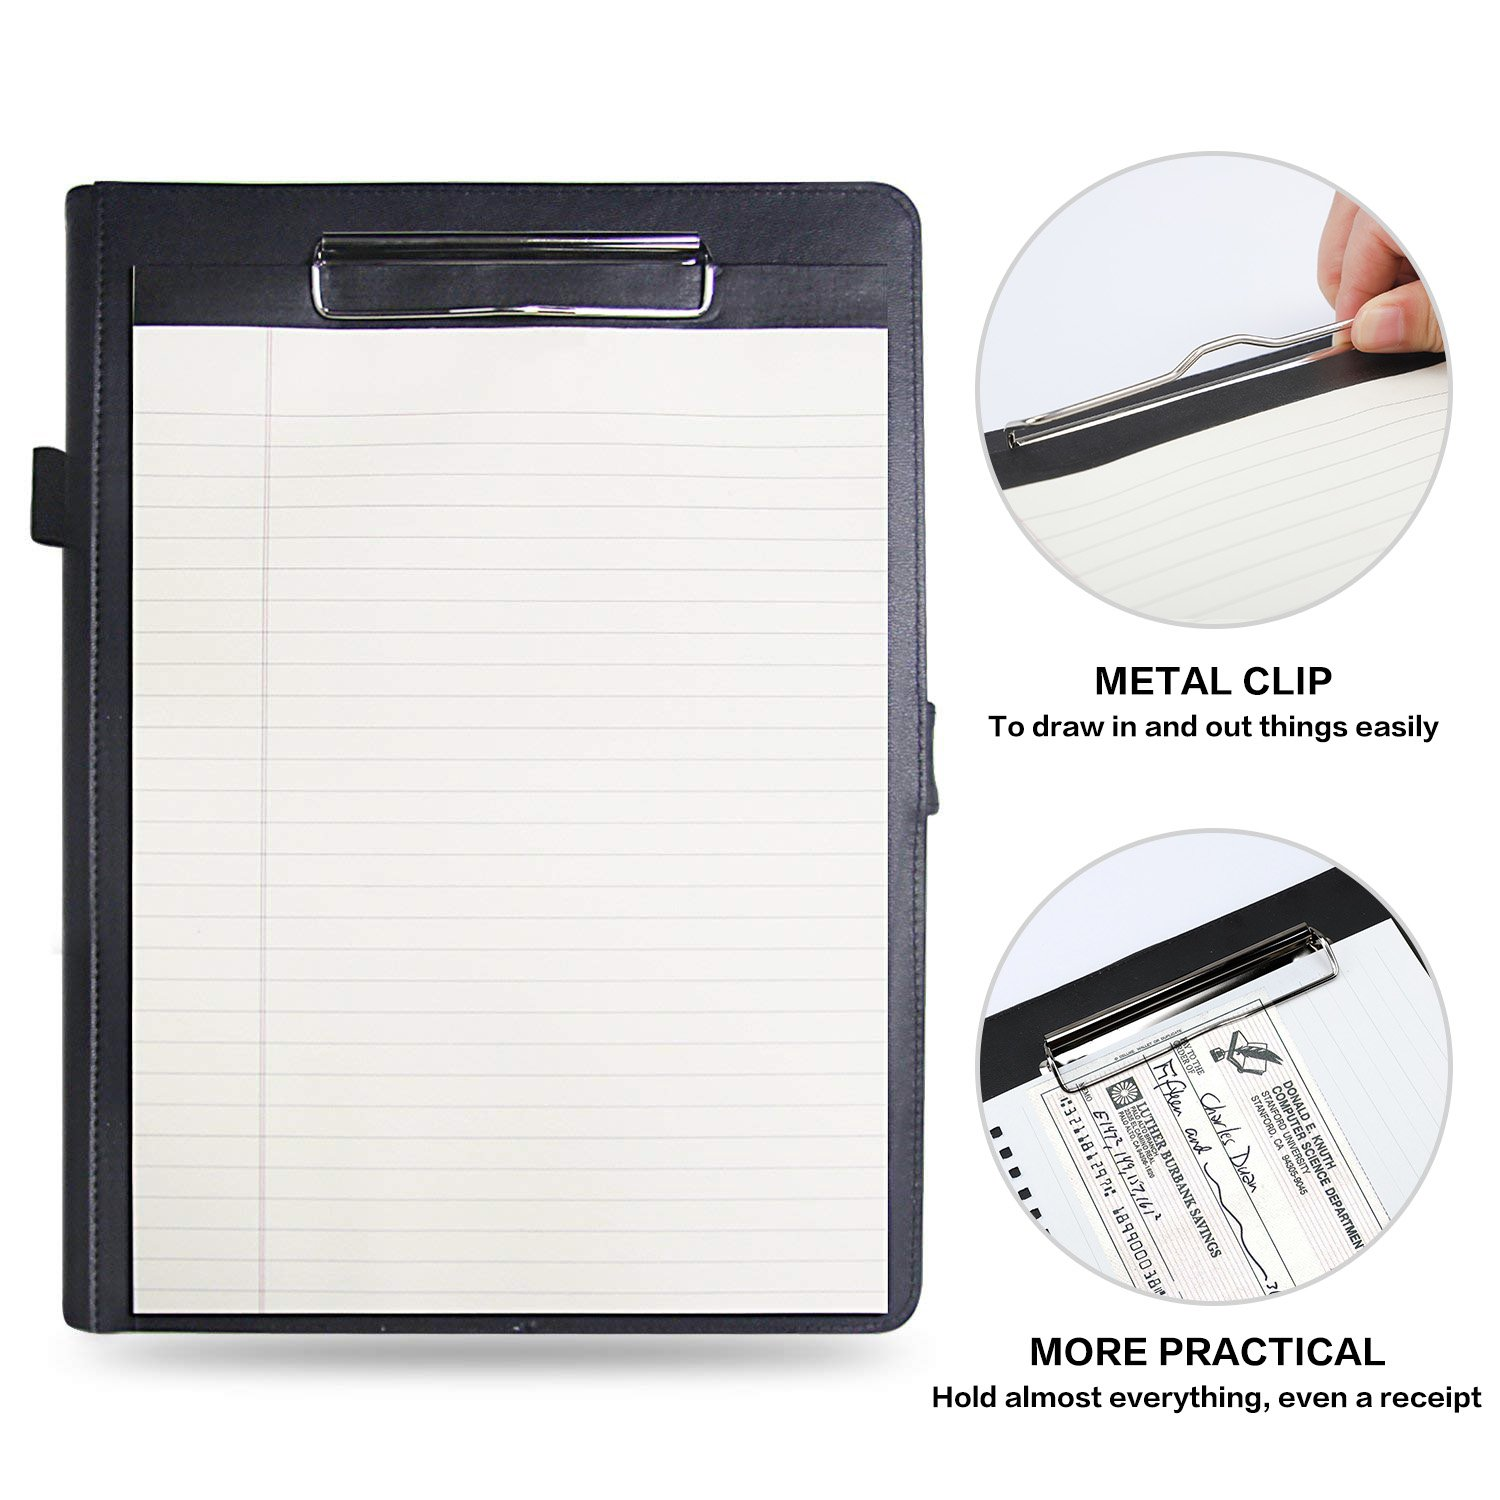 Padfolio Business/Resume Portfolio, AHGXG Leather Folder with Clipboard Document Organizer with Paper Clip, Legal Writing Pad, Pen Holder, Magnetic Closure and Pockets Contrast Stitch for Interview by AHGXG (Image #1)